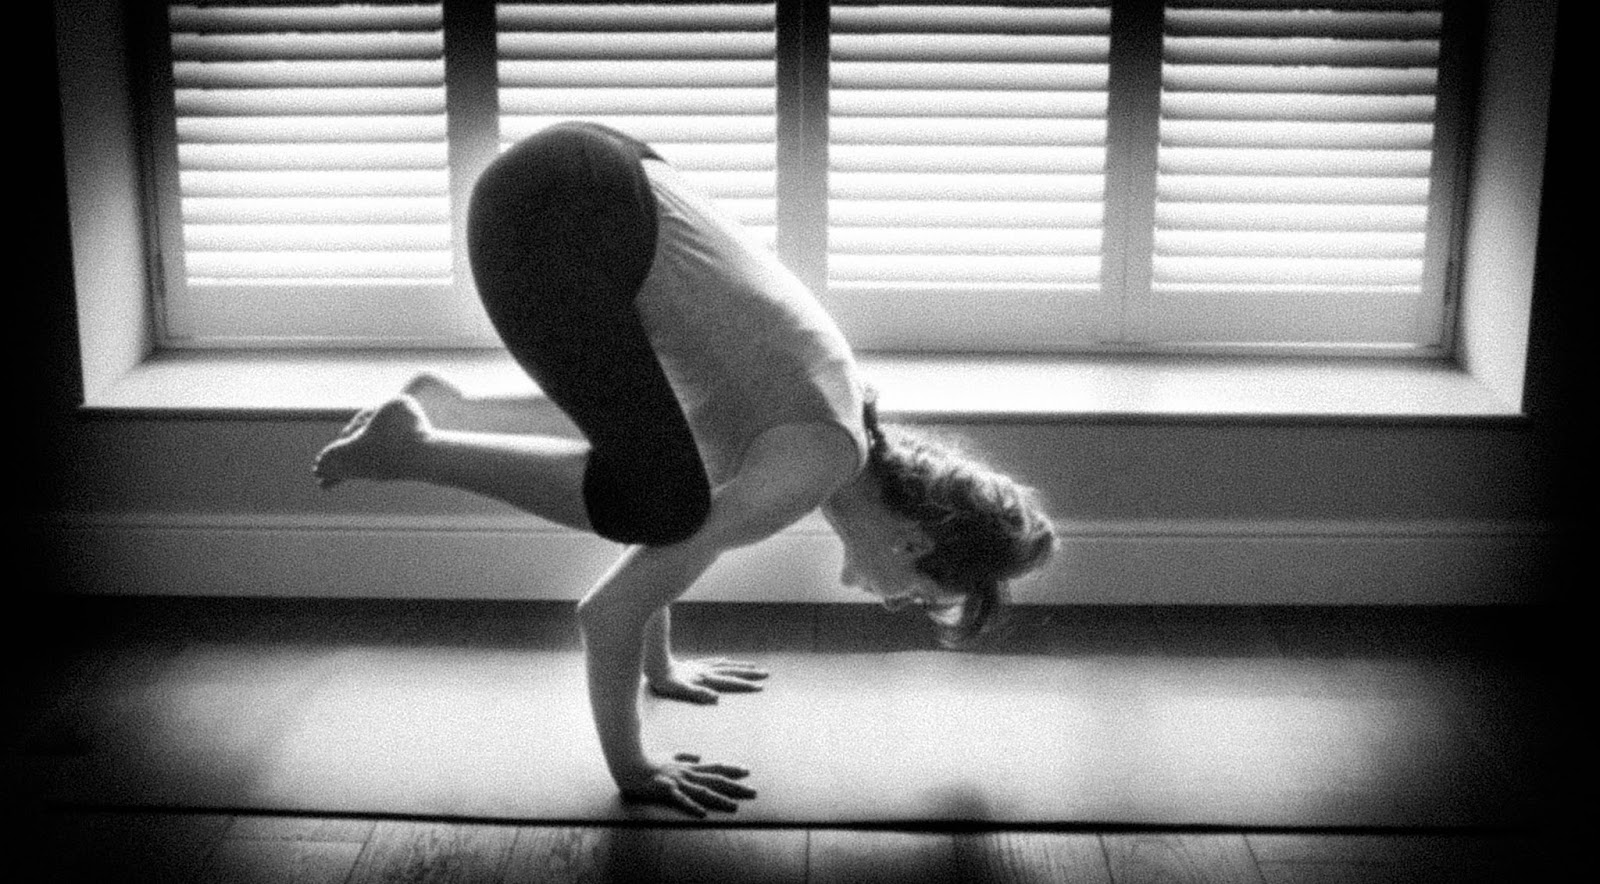 Yoga essex, grange paddocks yoga, yoga bishops stortford, toward yoga